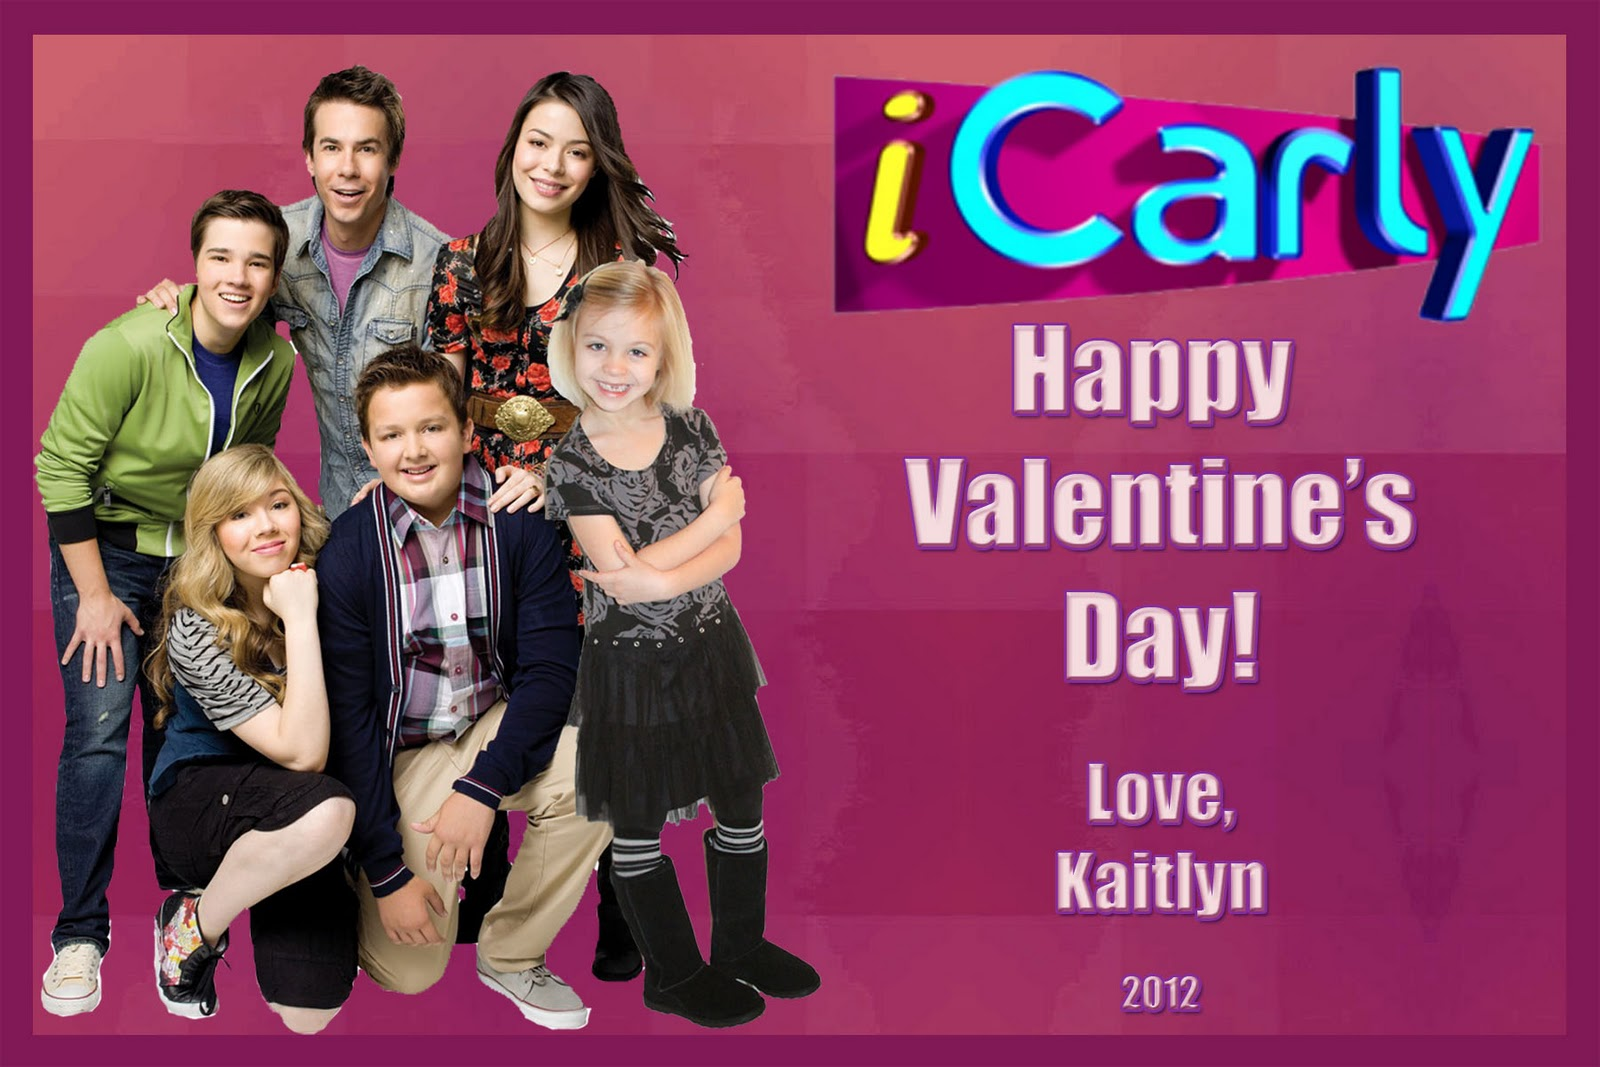 The Design Studio Valentines Day Cards – Icarly Valentine Cards